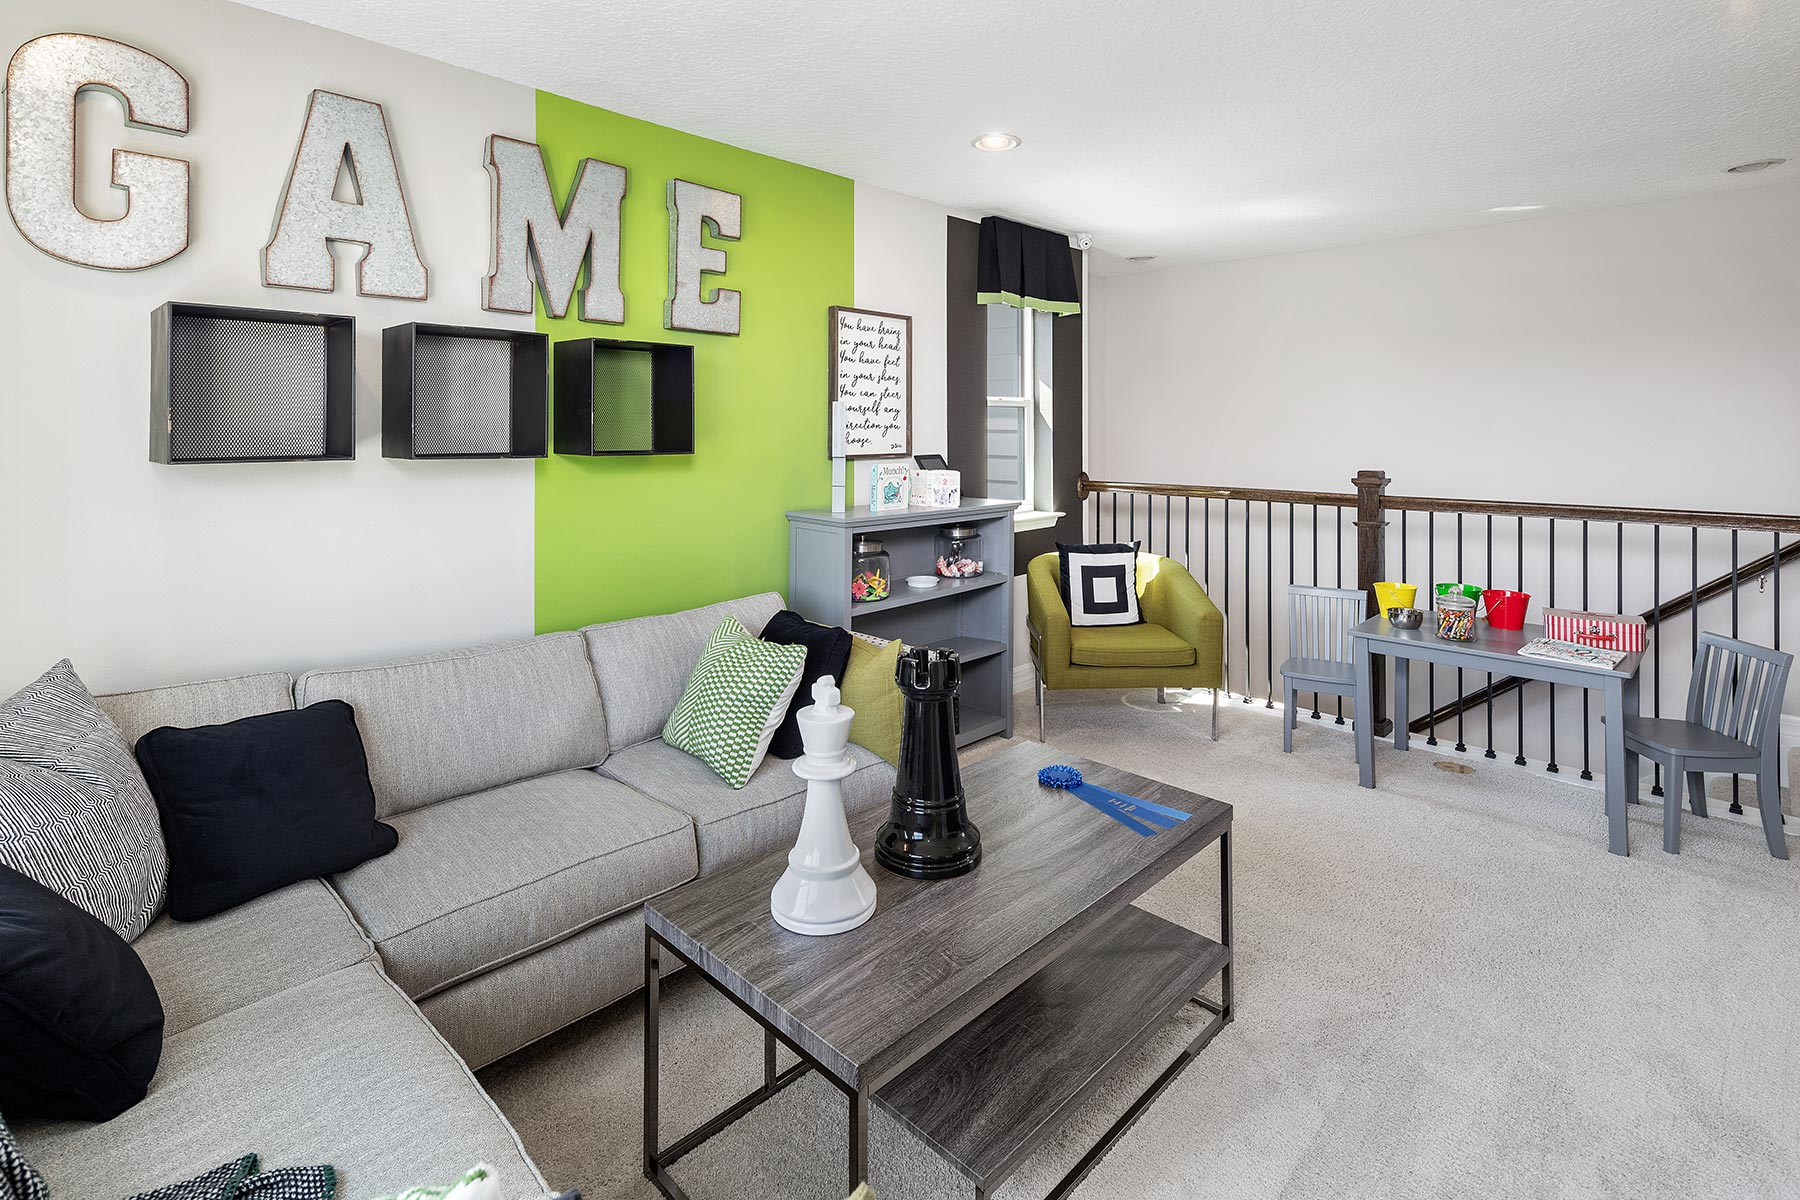 Campbell Plan Recreation Room at Tohoqua in Kissimmee Florida by Mattamy Homes